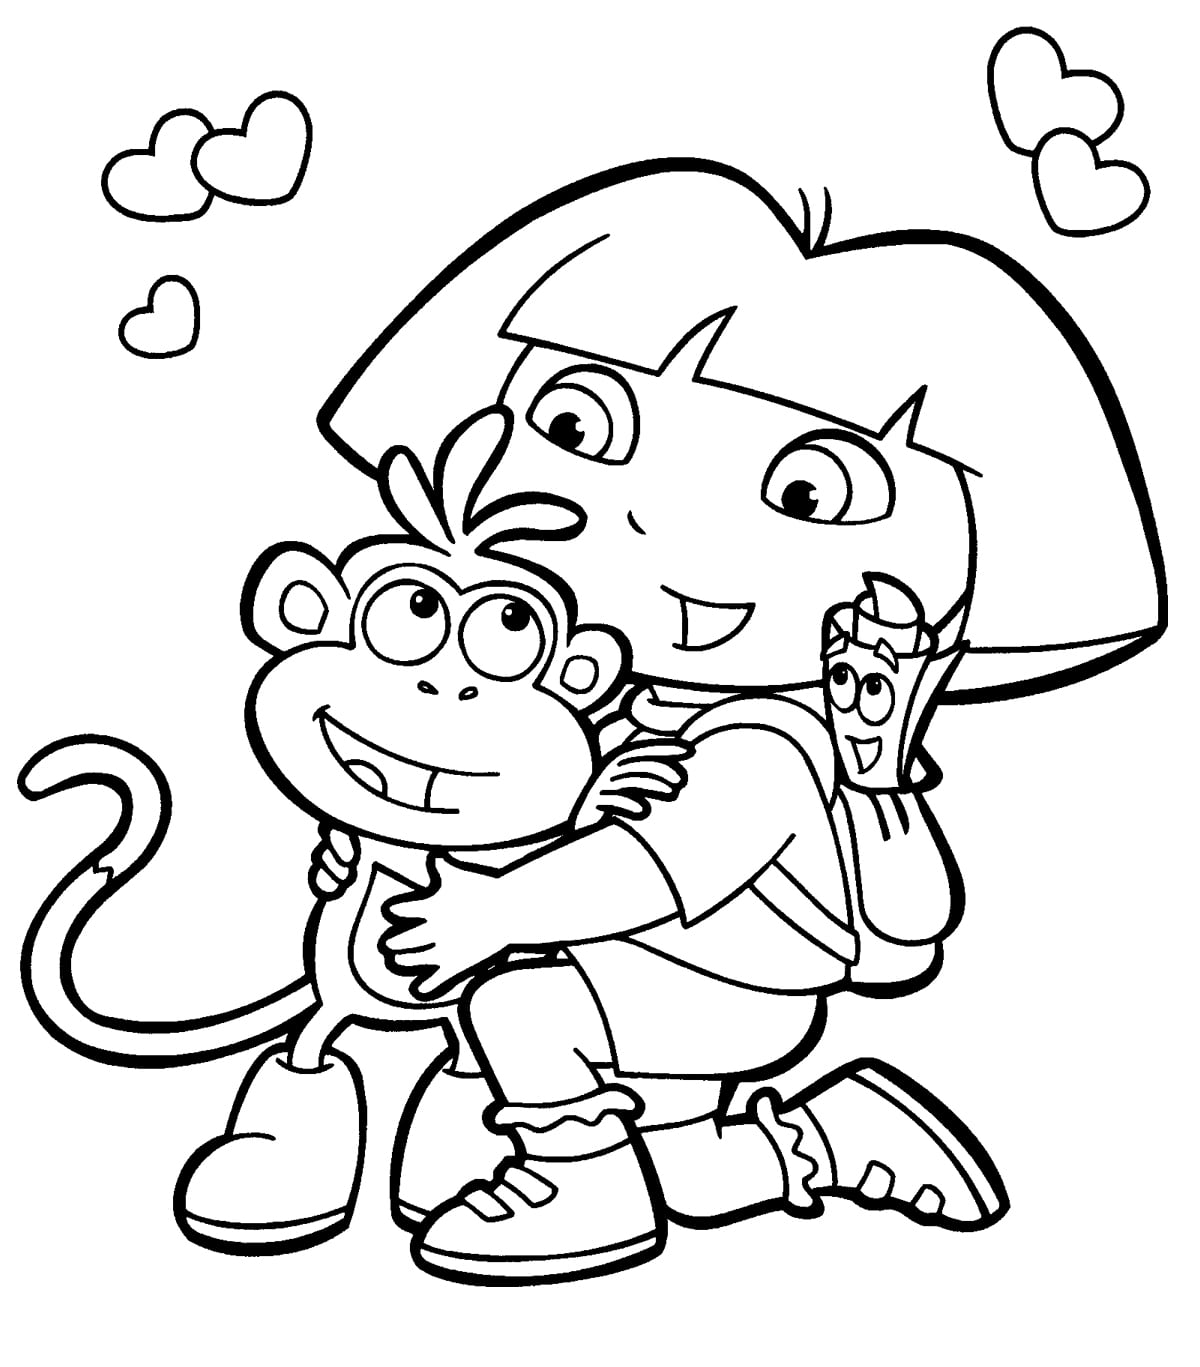 28+ Collection Of Printable Dora Coloring Pages